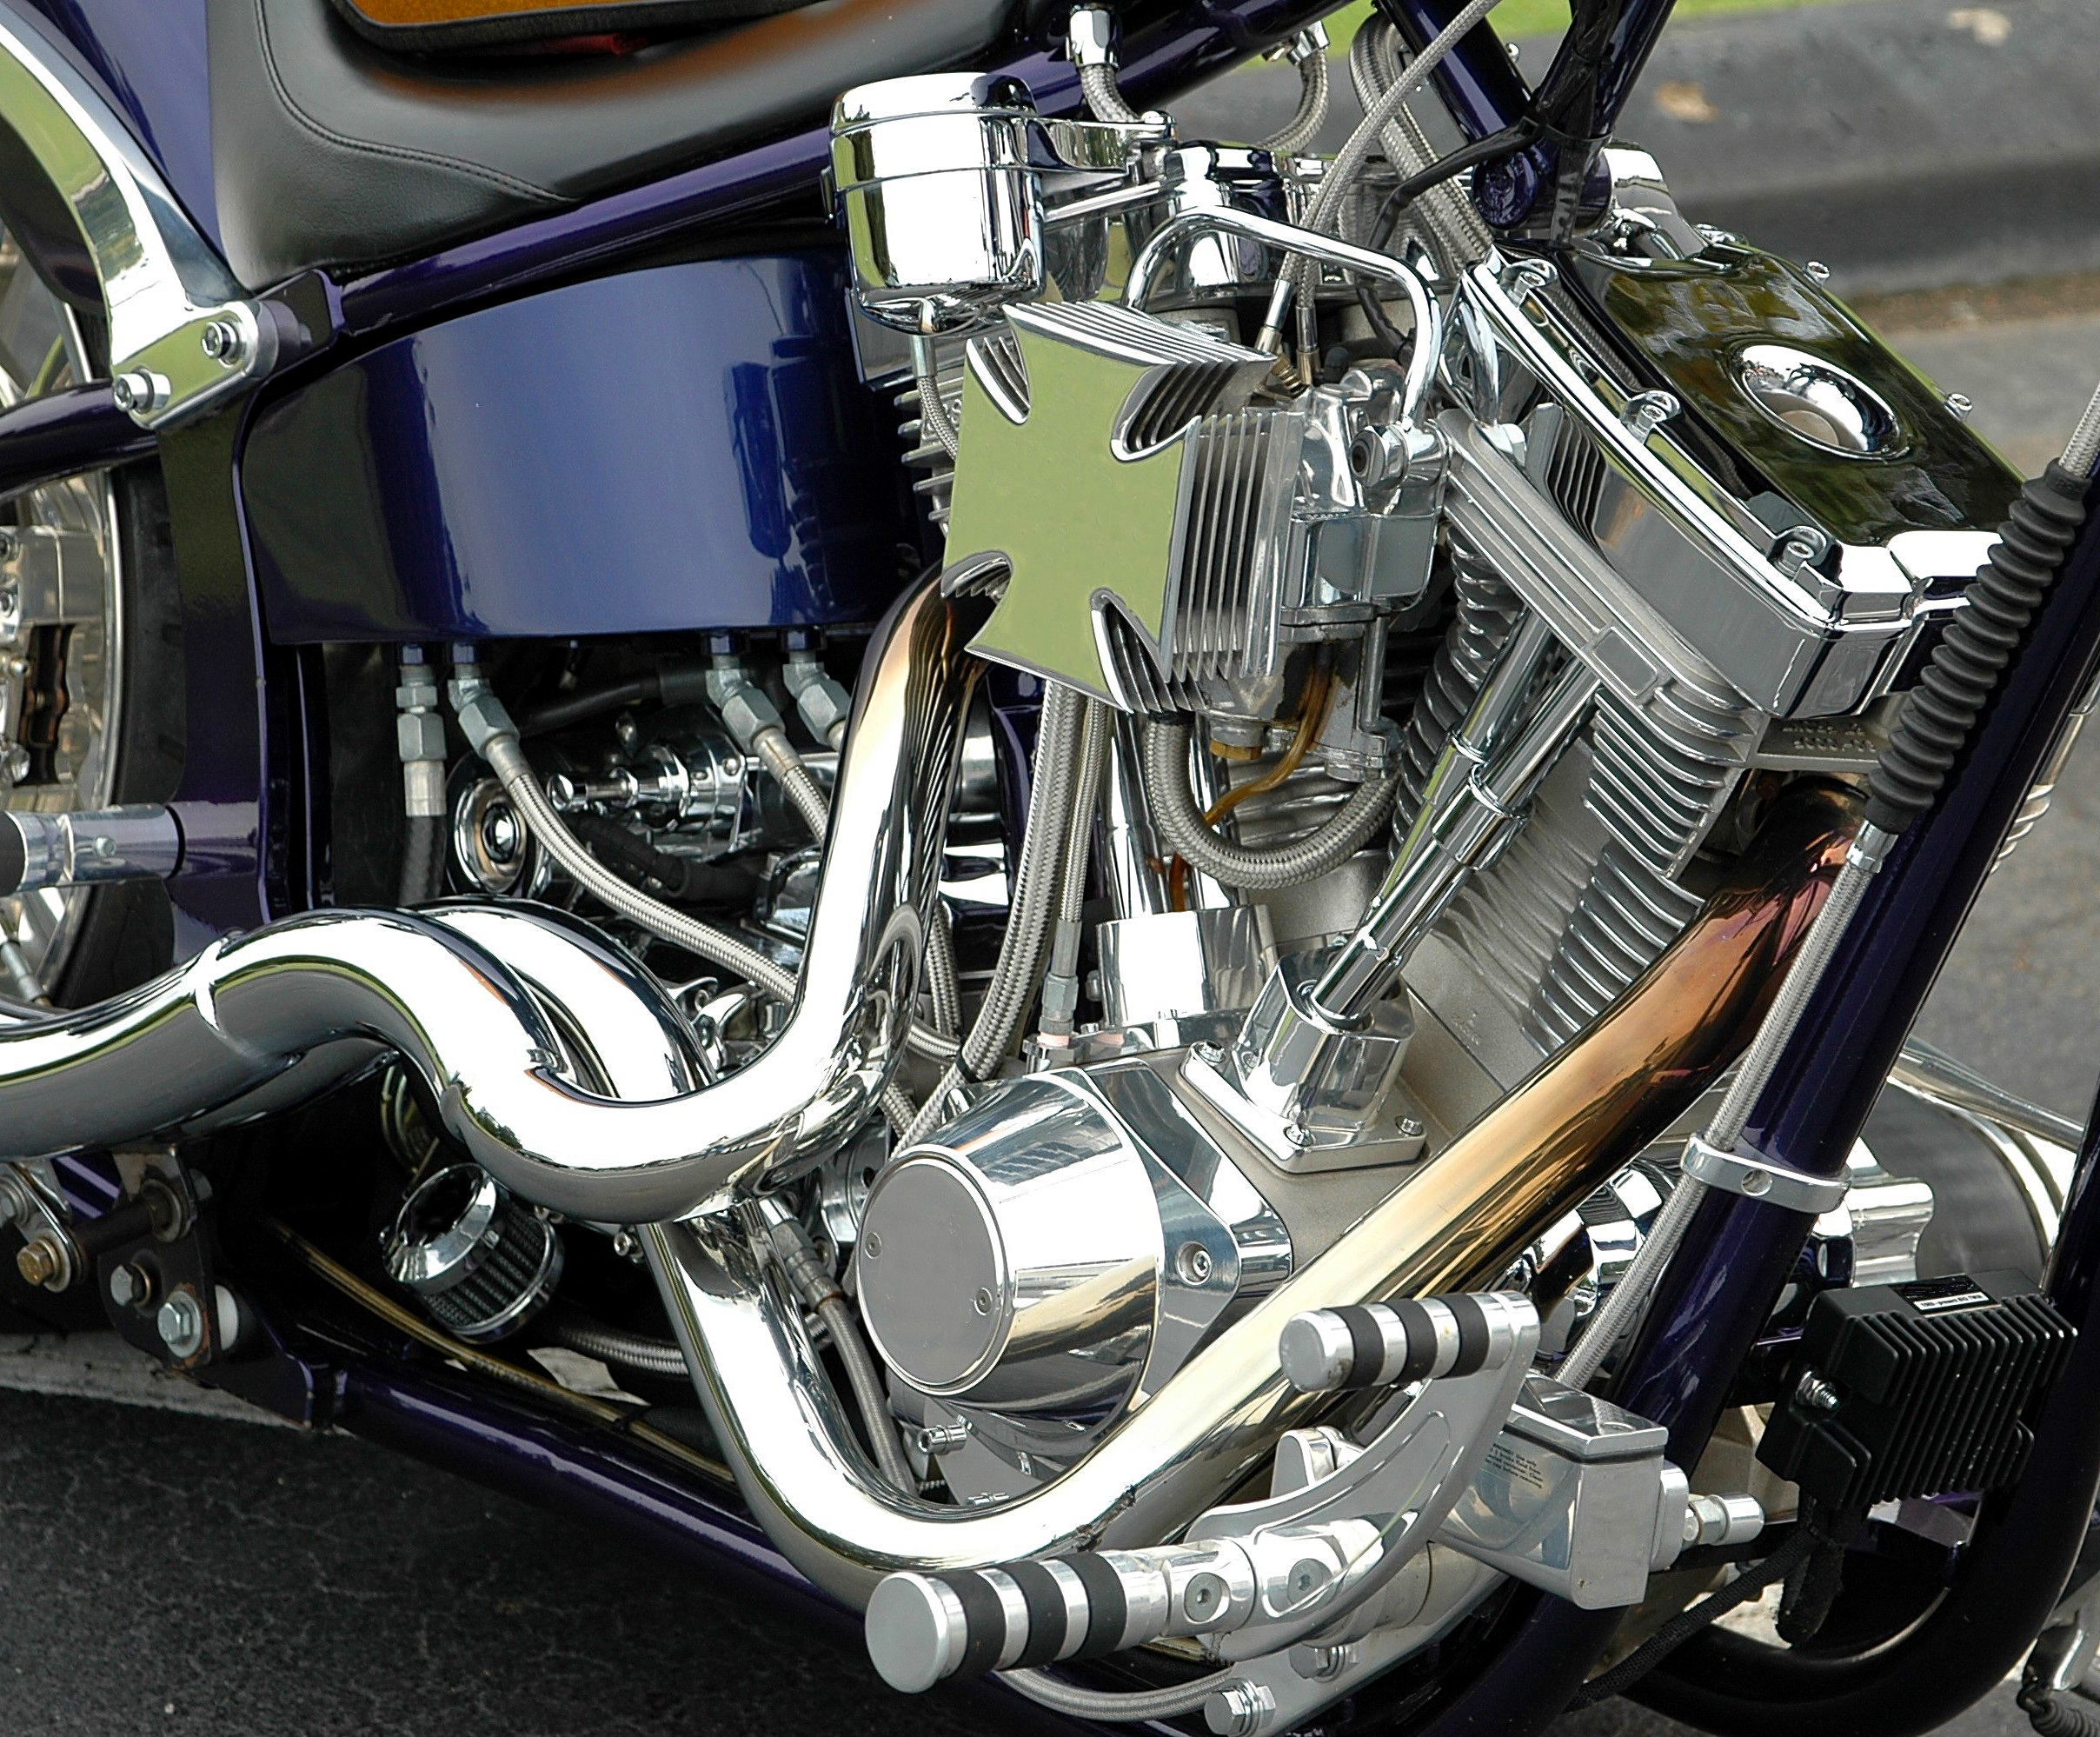 Motorcycle Engine Close-up Photo